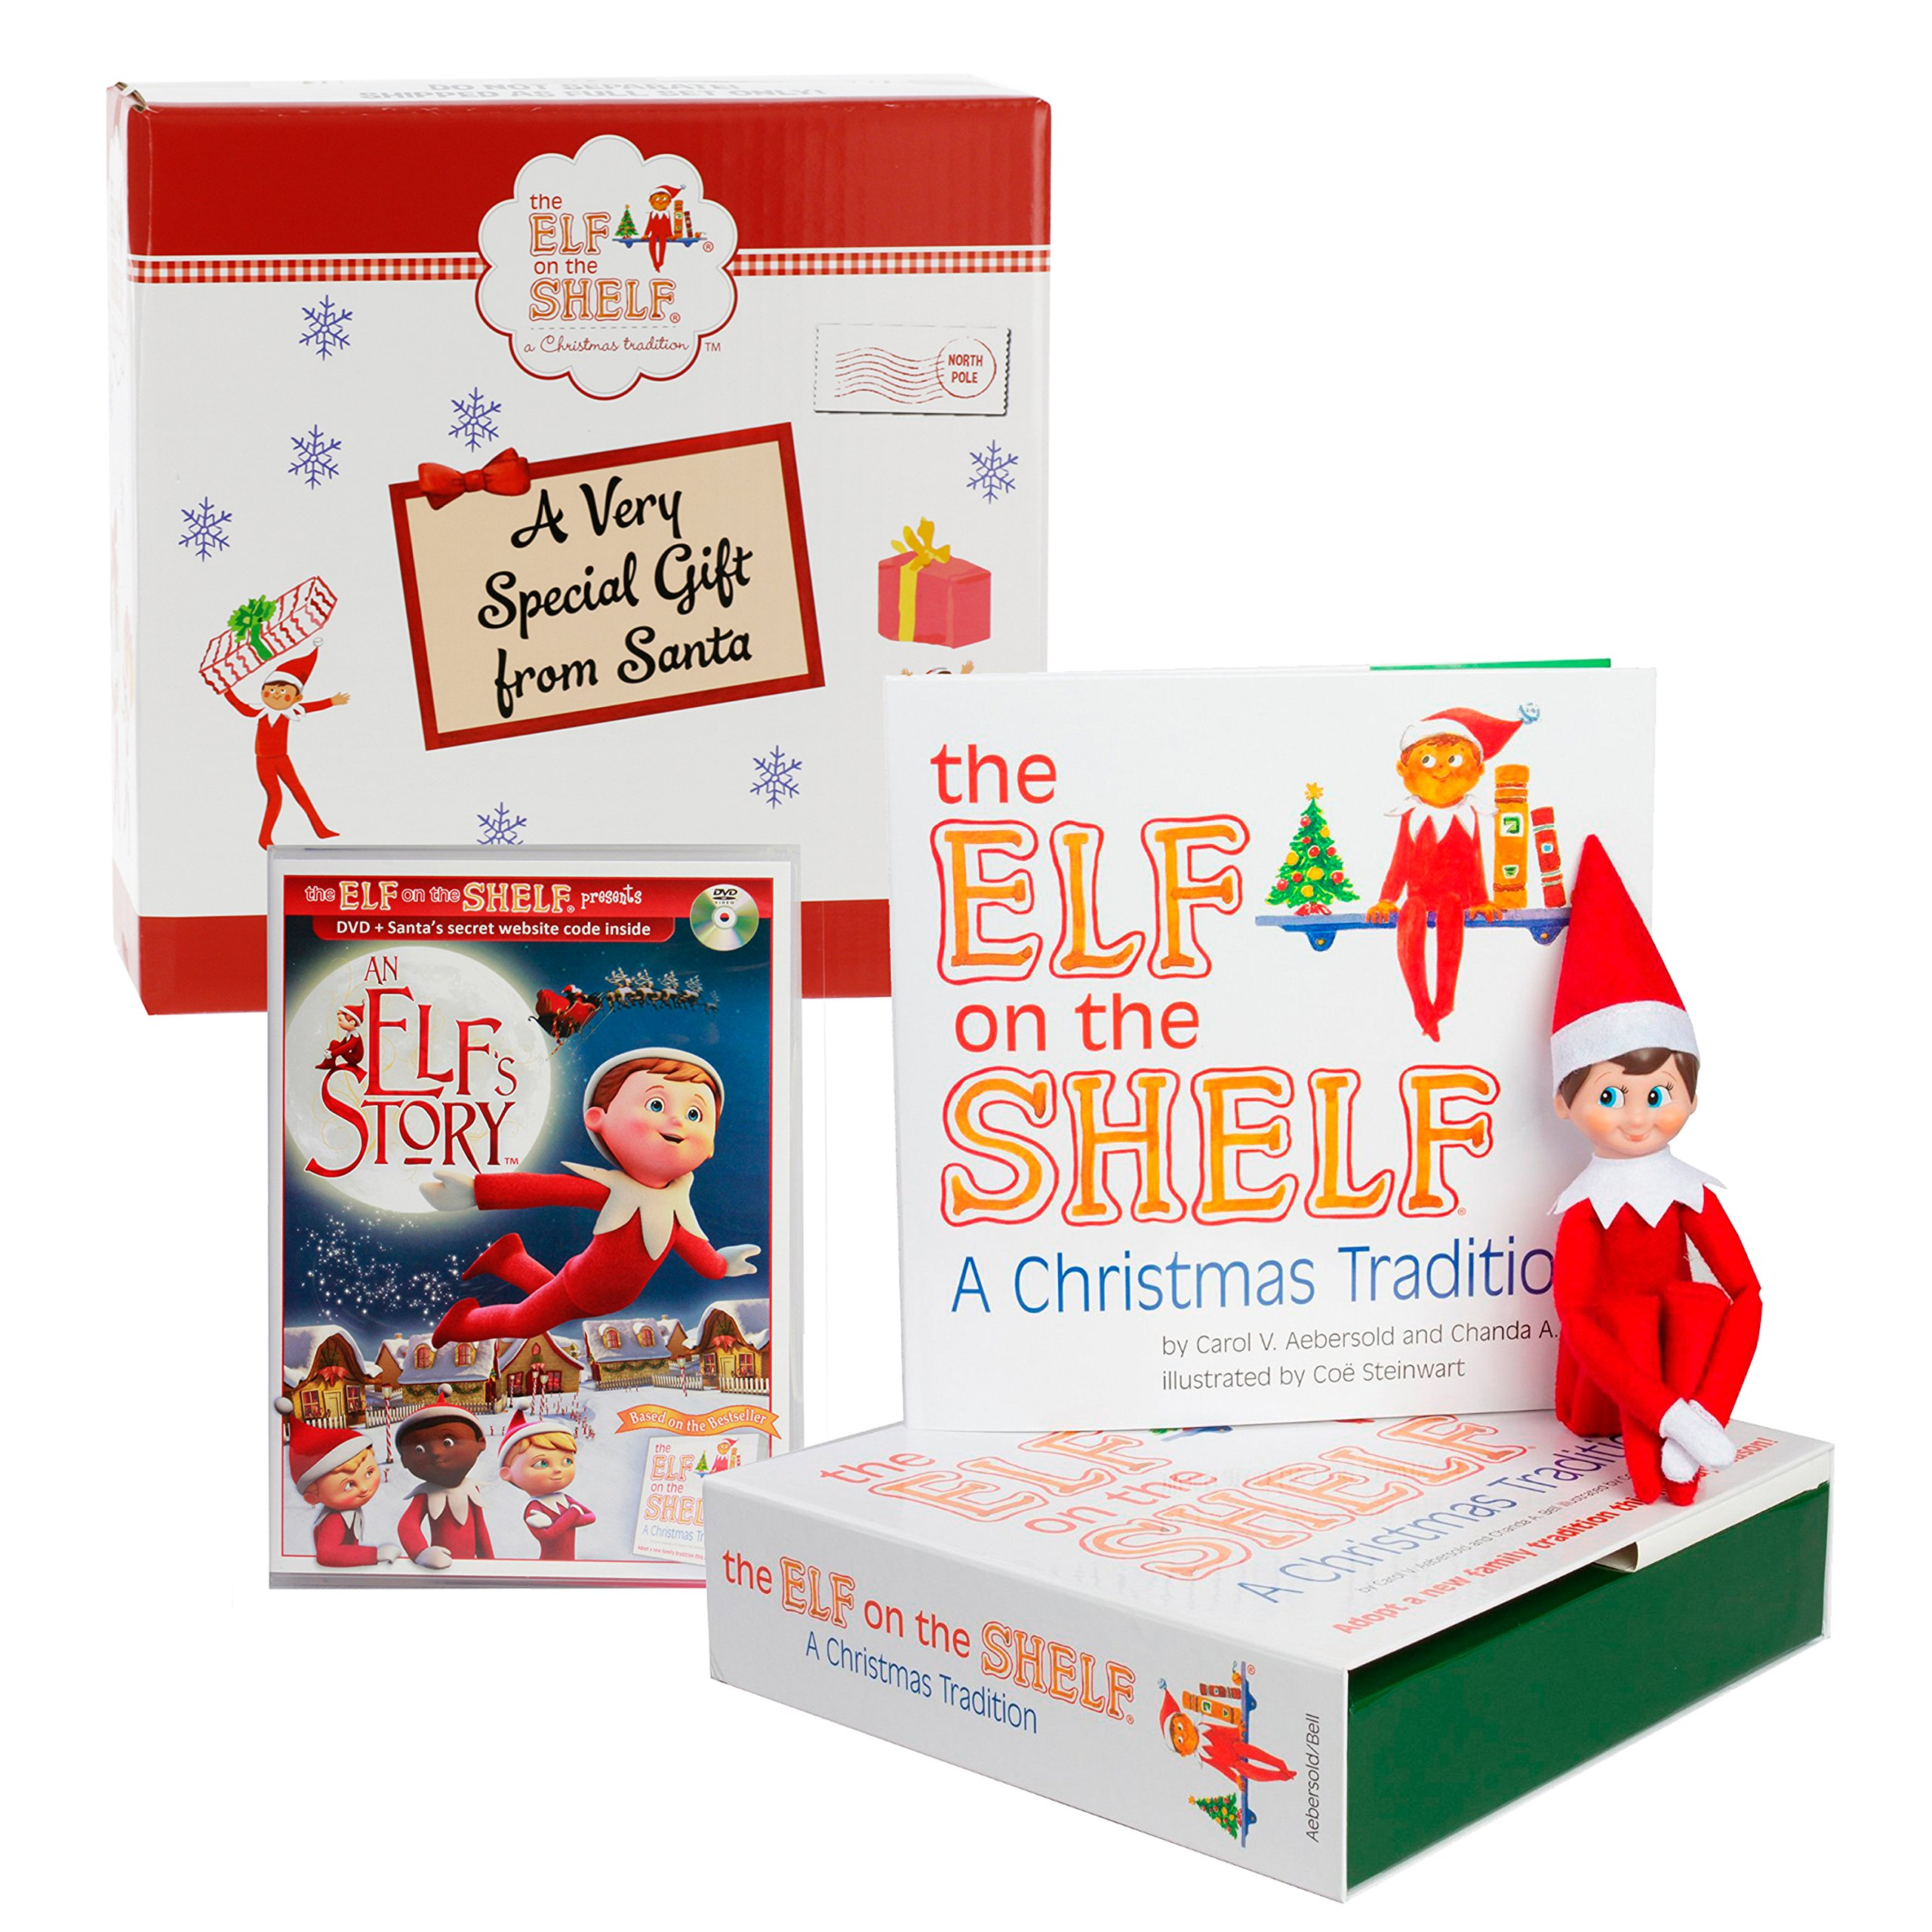 Elf on the Shelf Blue Eyed Boy with Bonus ''An Elf Story'' DVD - Direct From North Pole in Limited Edition Official Gift Box